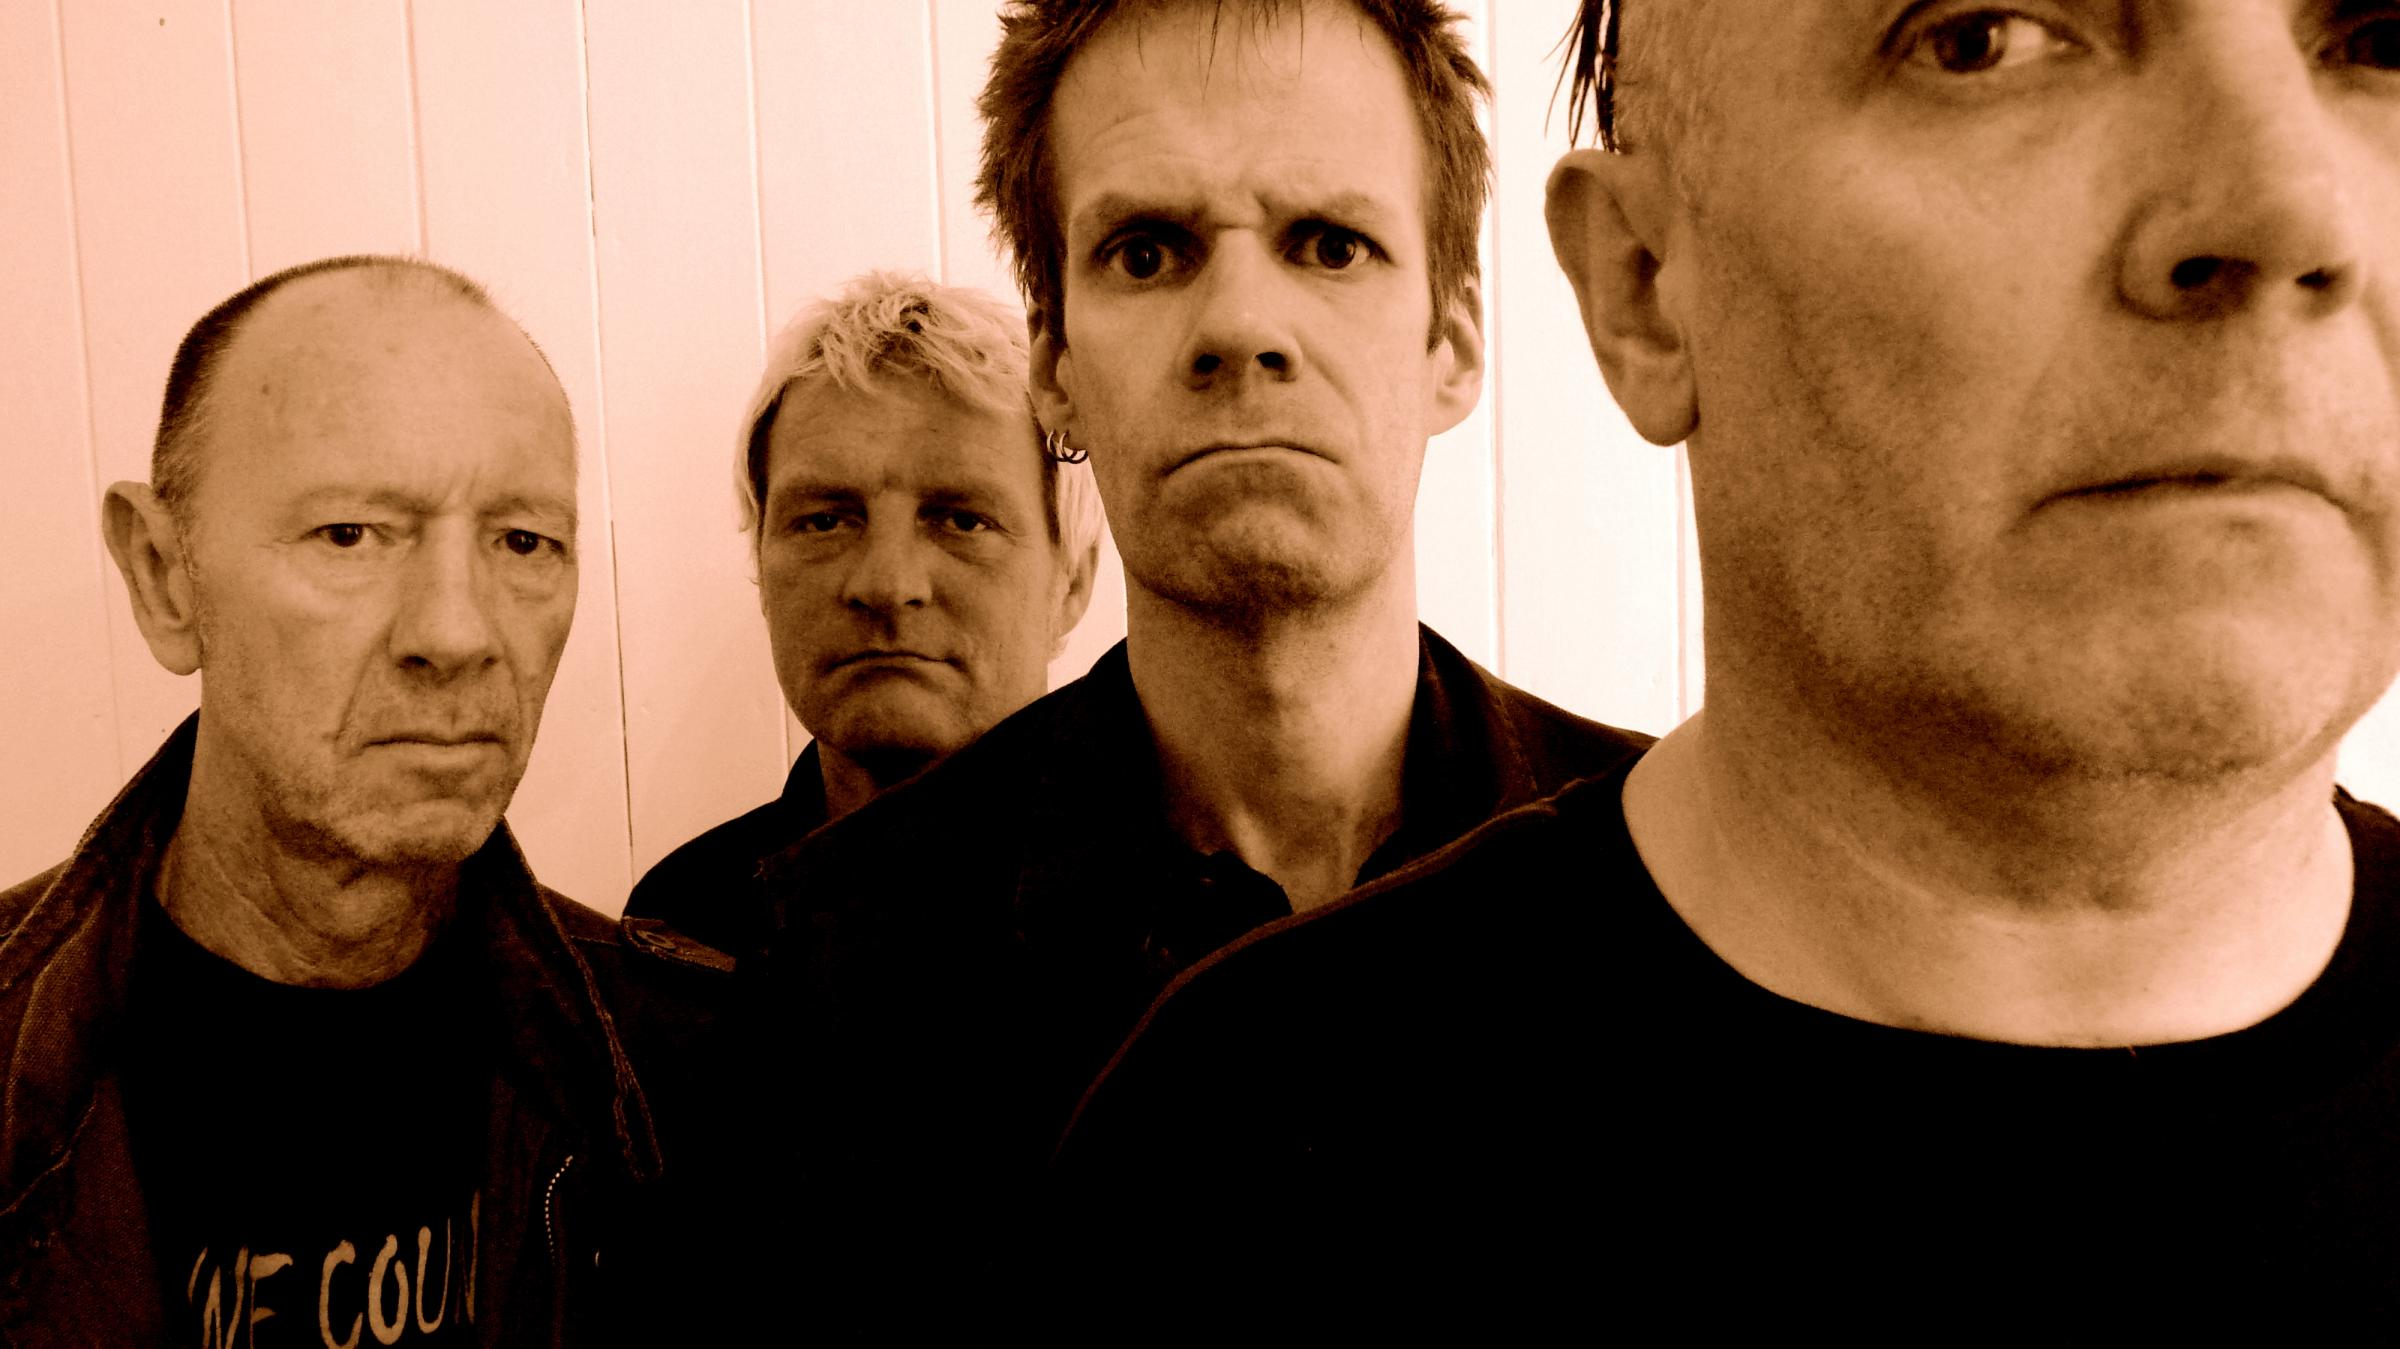 ANNOUNCED: SHAM69 will play at Newport Punk and New Wave Festival Picture: Picasa